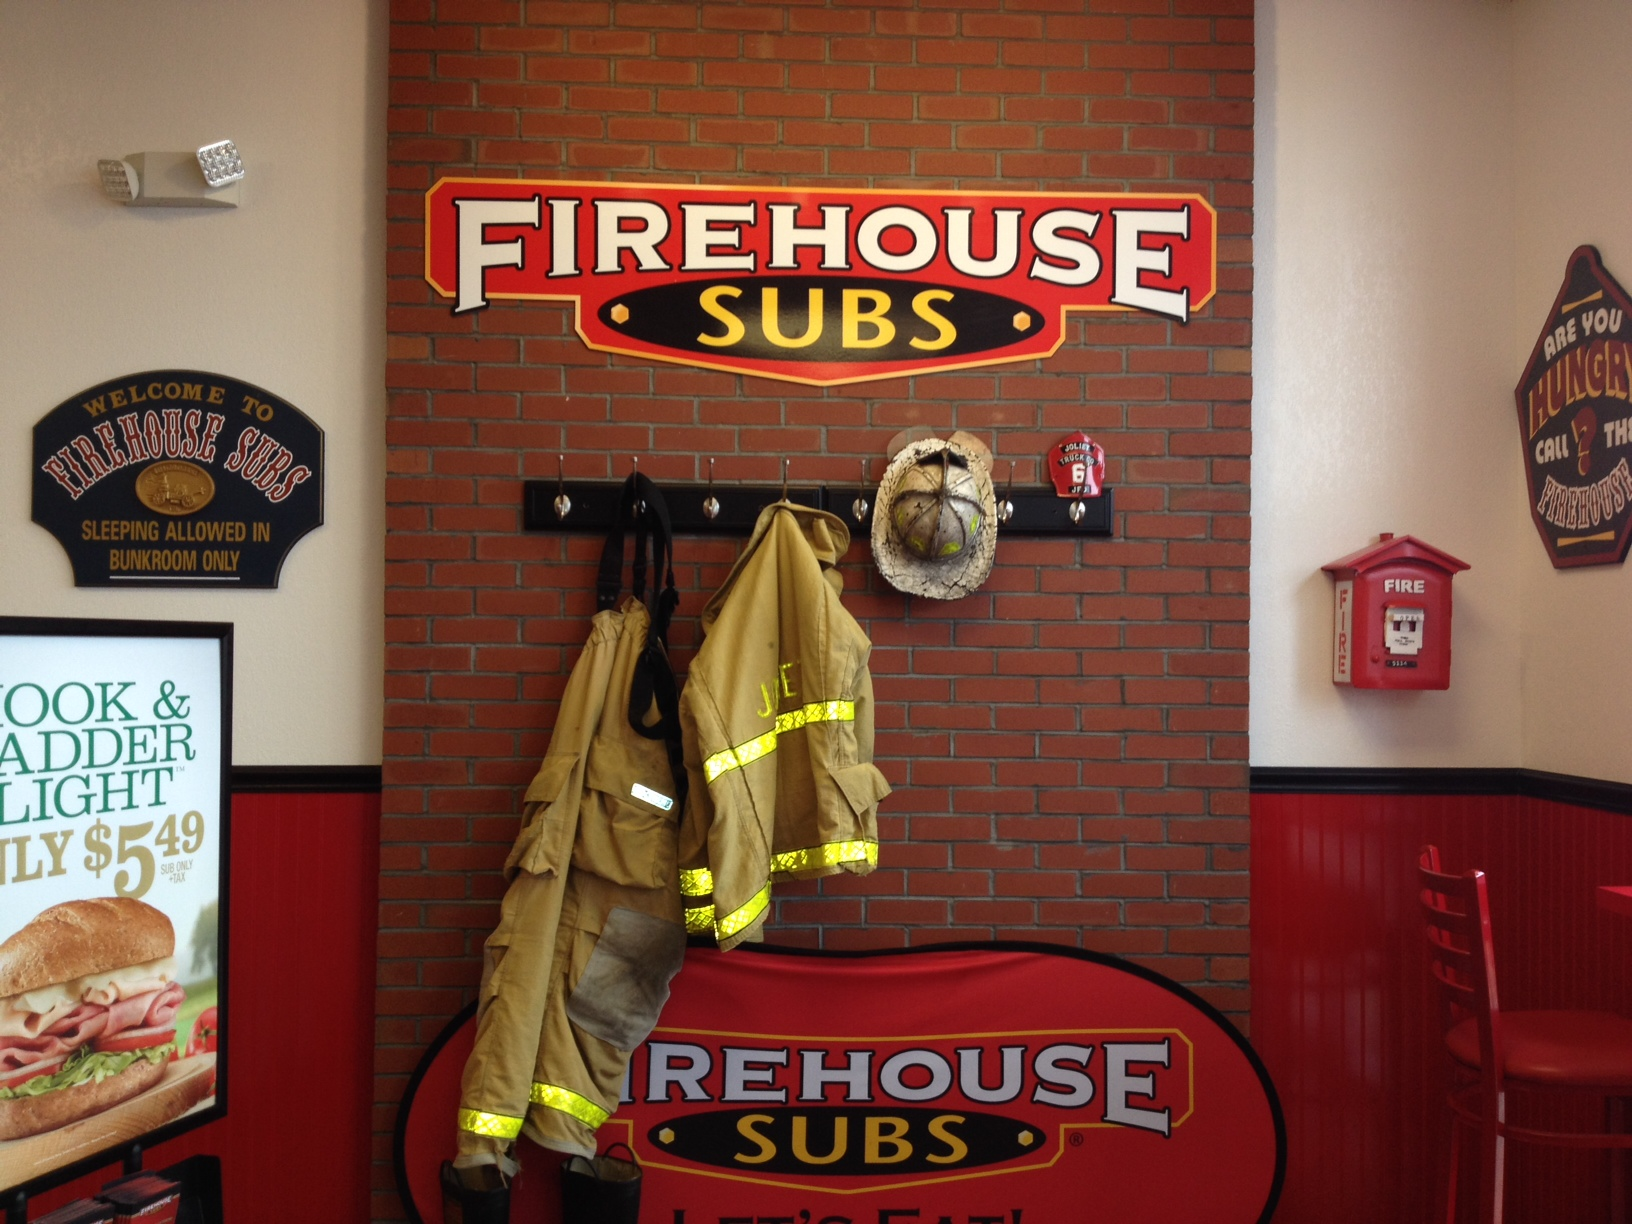 case 6 firehouse subs